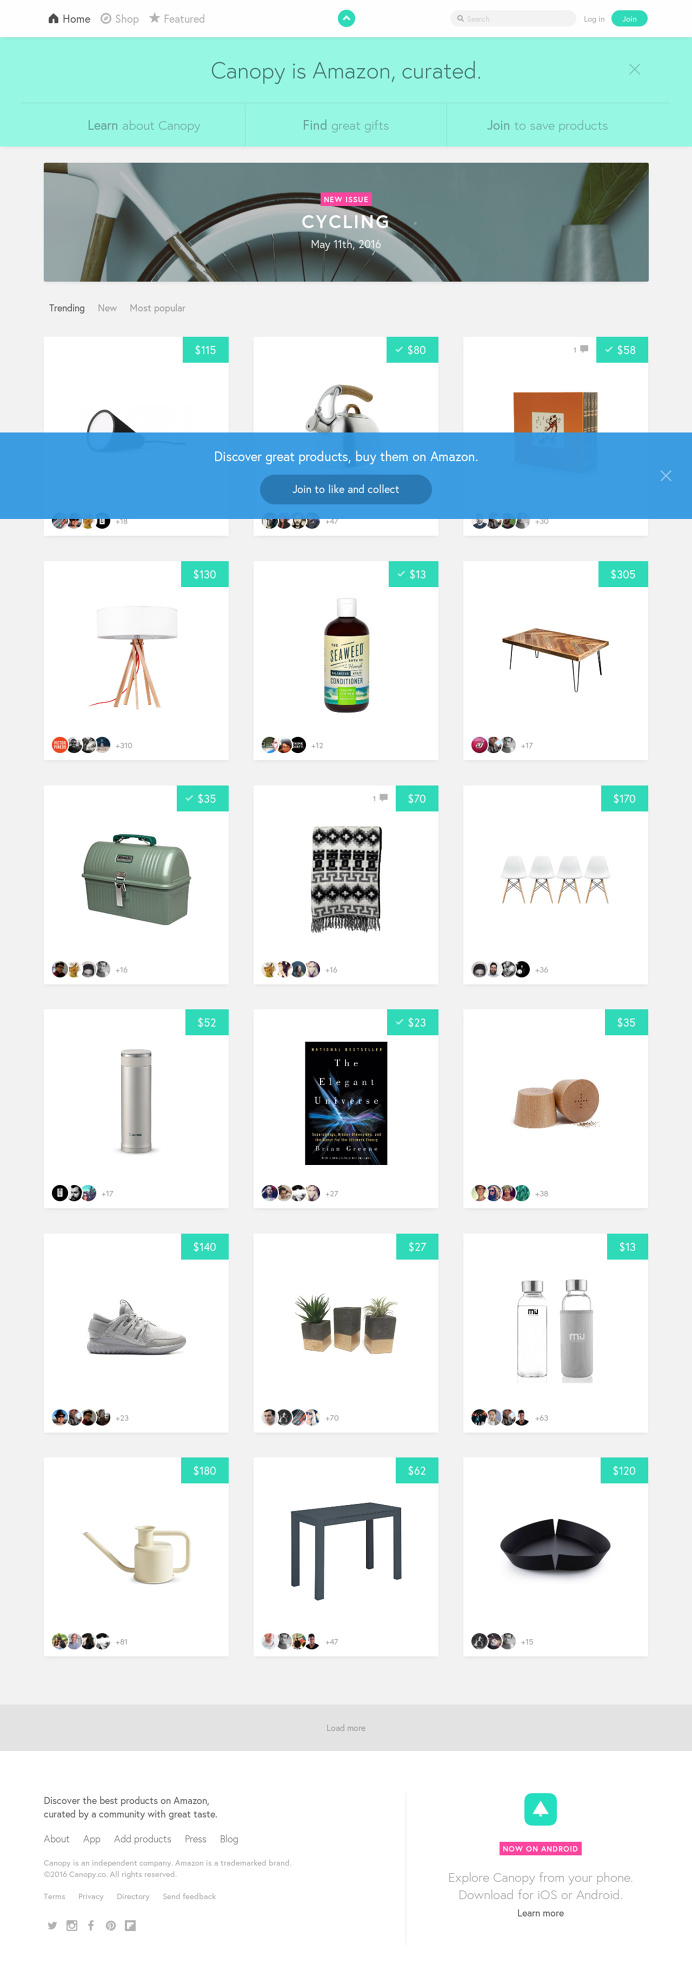 Canopy.co - A Curated Shop for Amazon